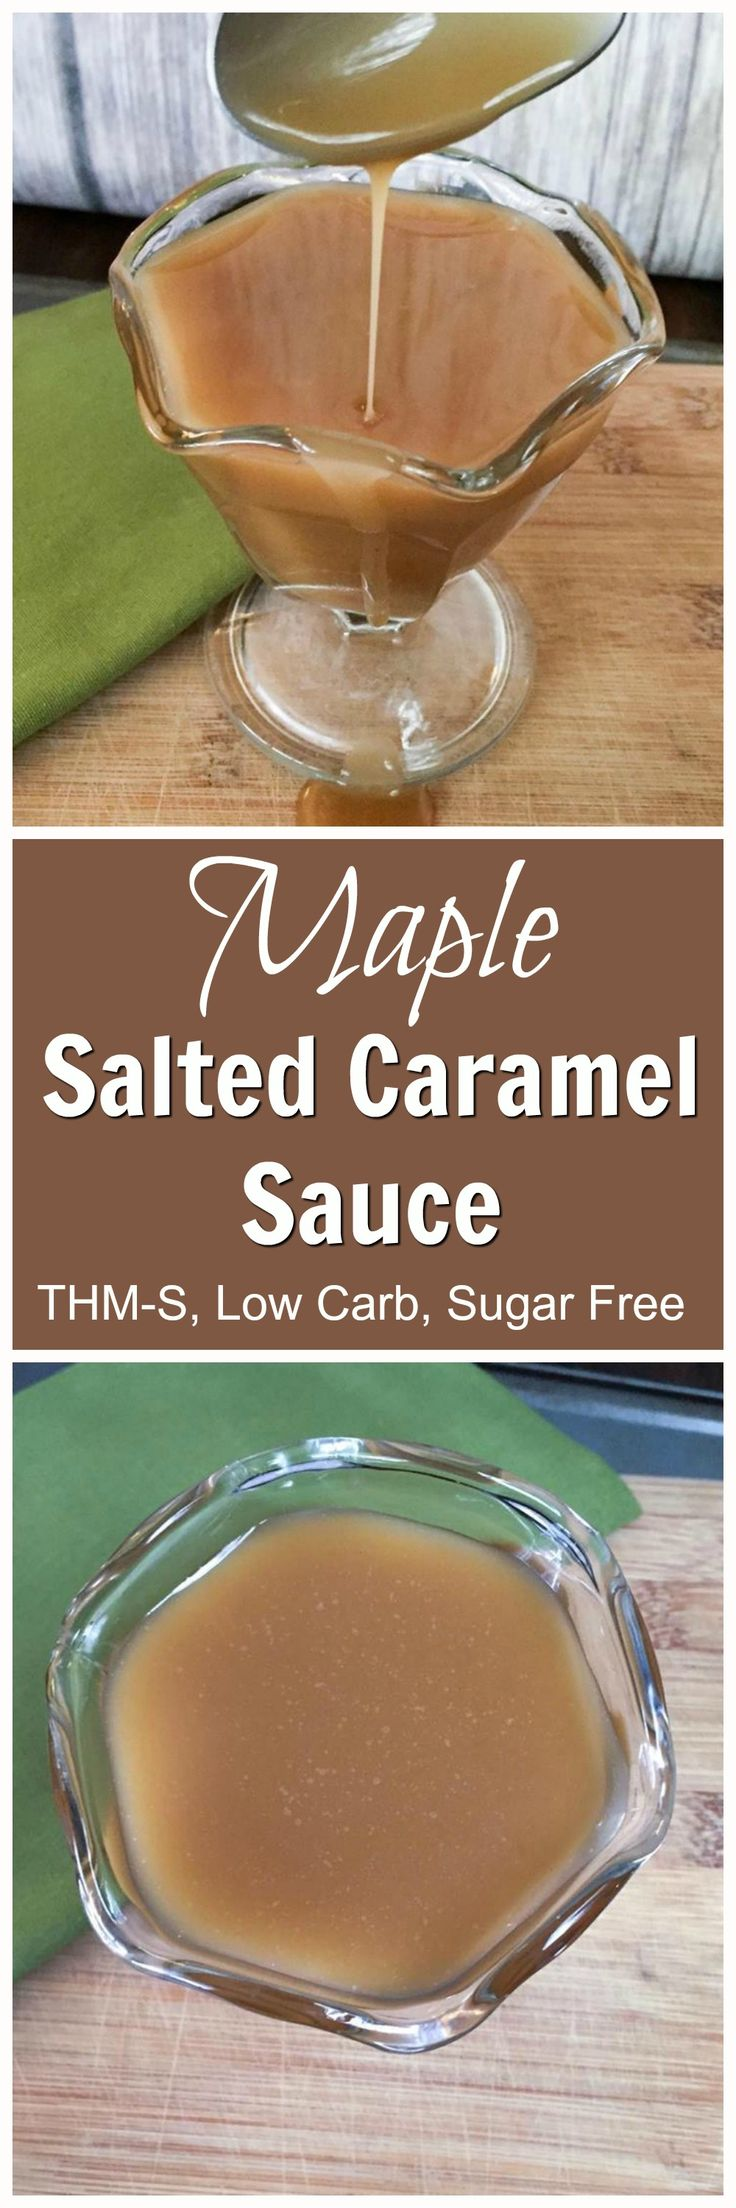 Maple Salted Caramel Sauce (Low Carb, THM-S, Sugar Free)